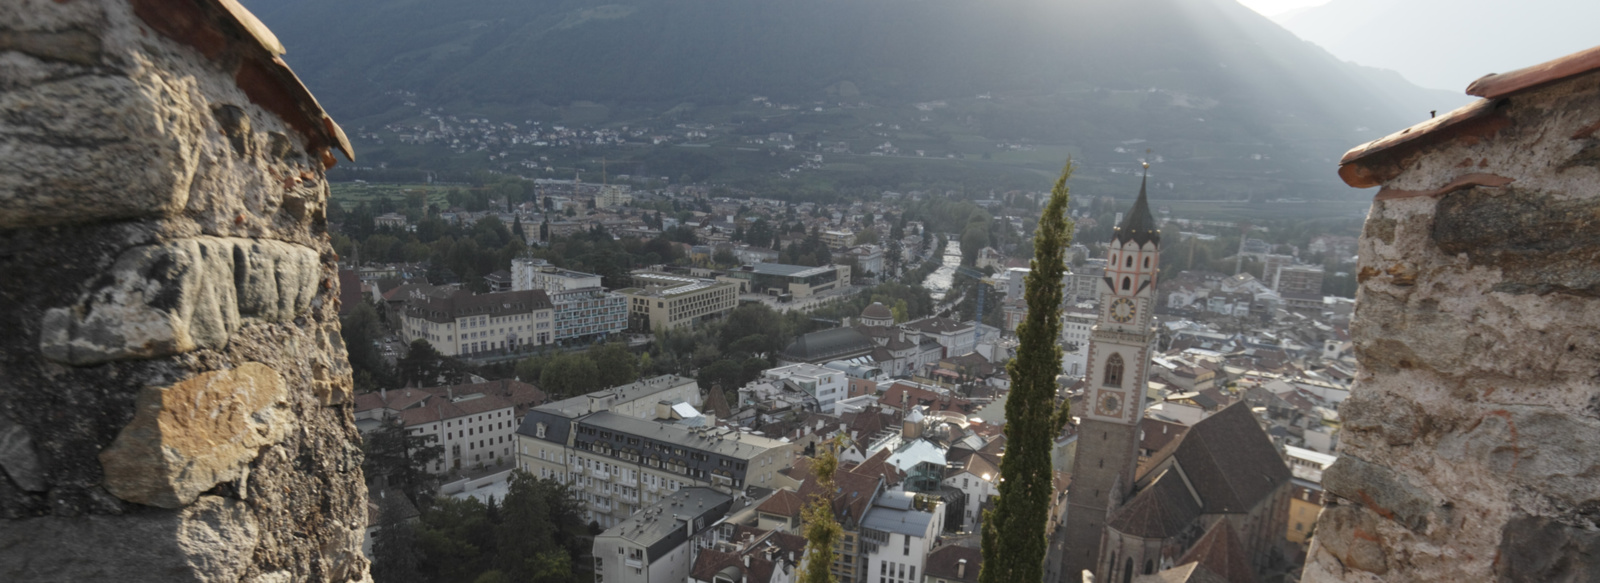 The Powder Tower in Merano in South Tyrol - Lana